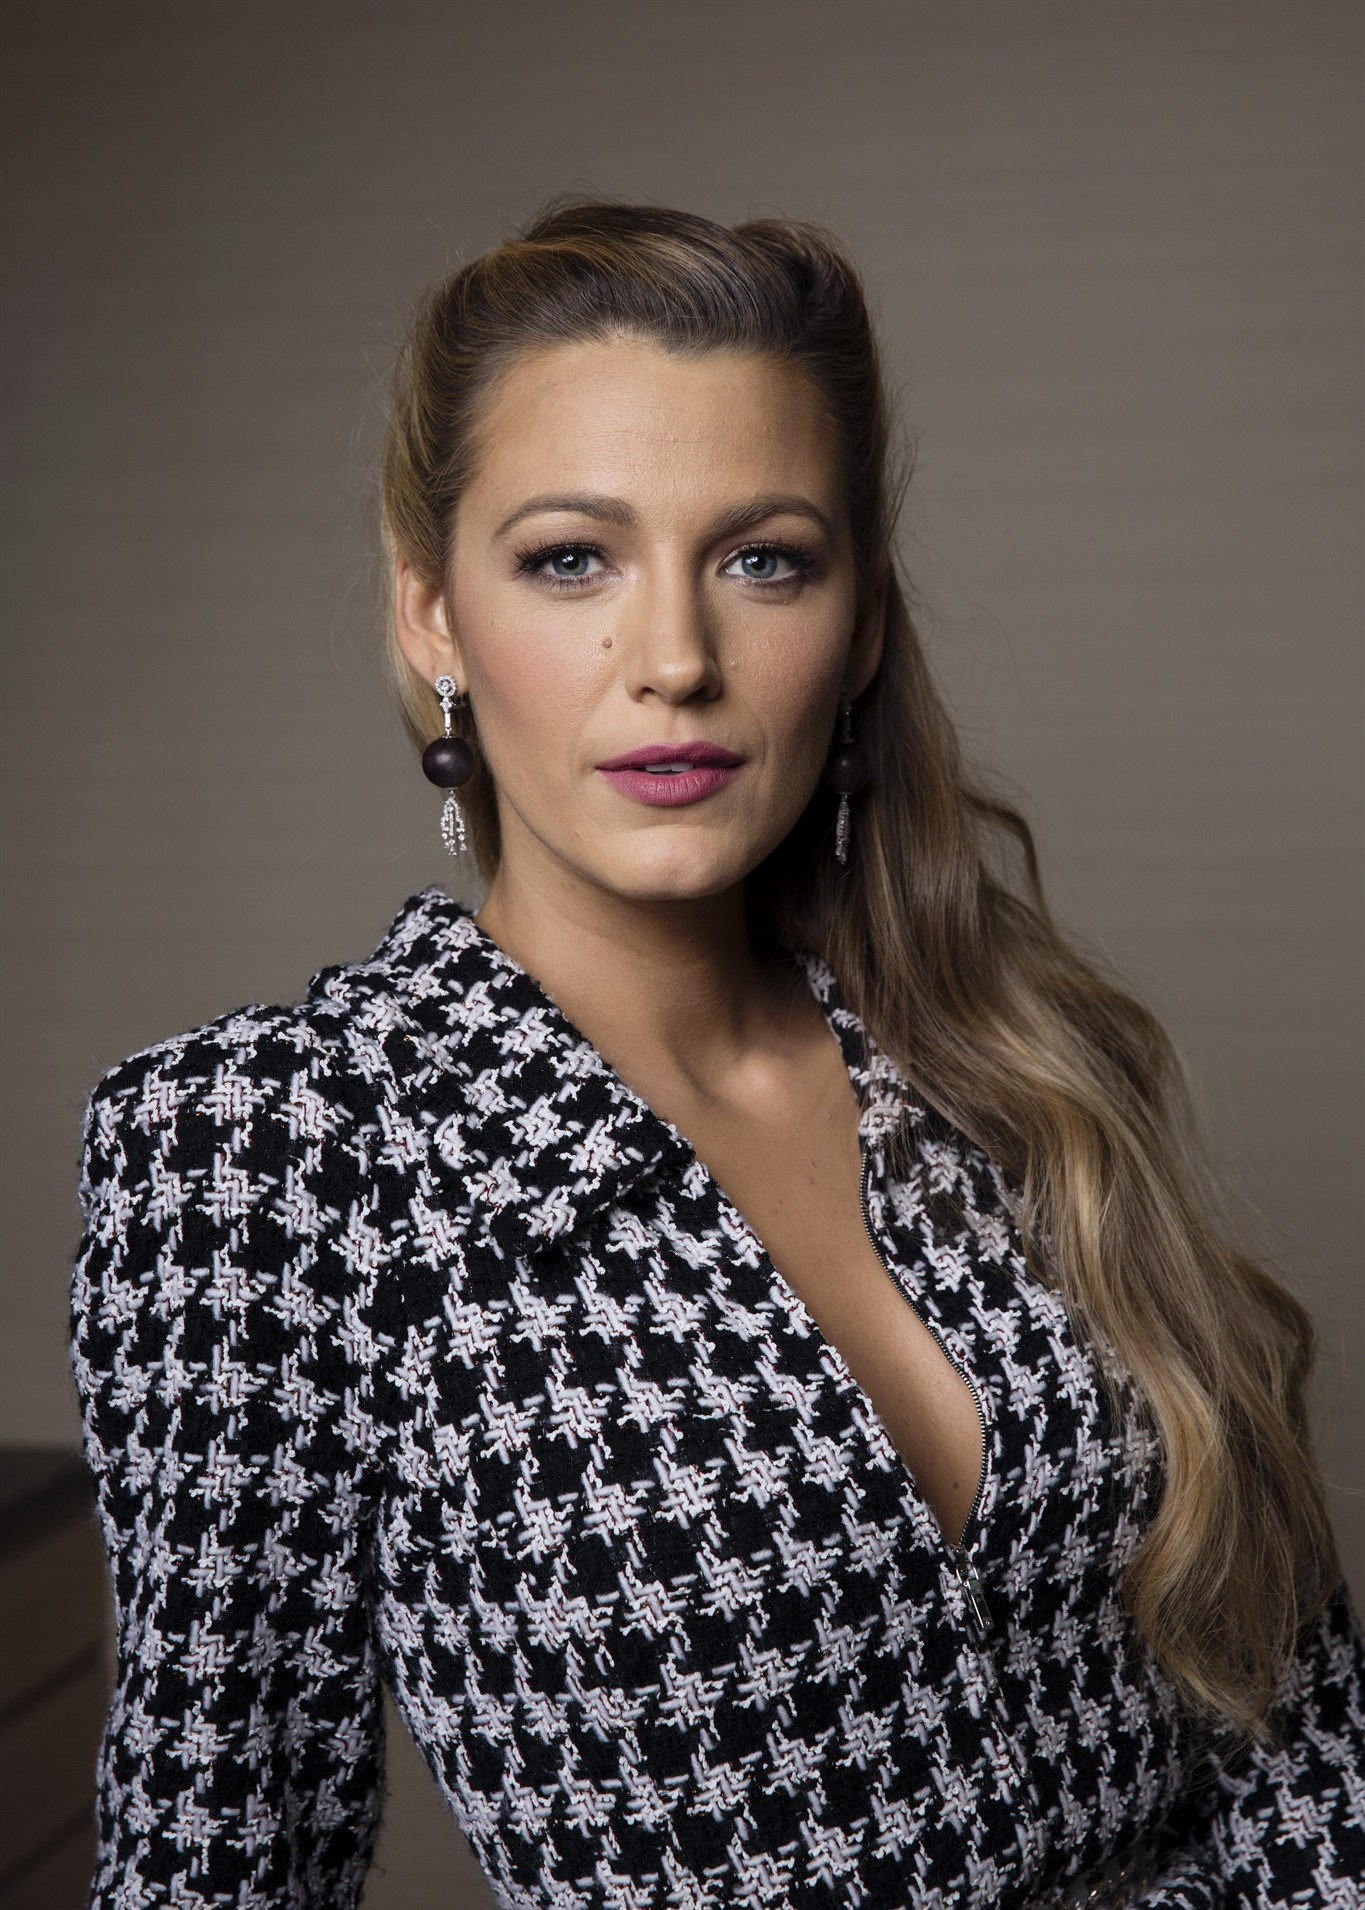 blake lively tackles blindness in new complex film role - 570 news